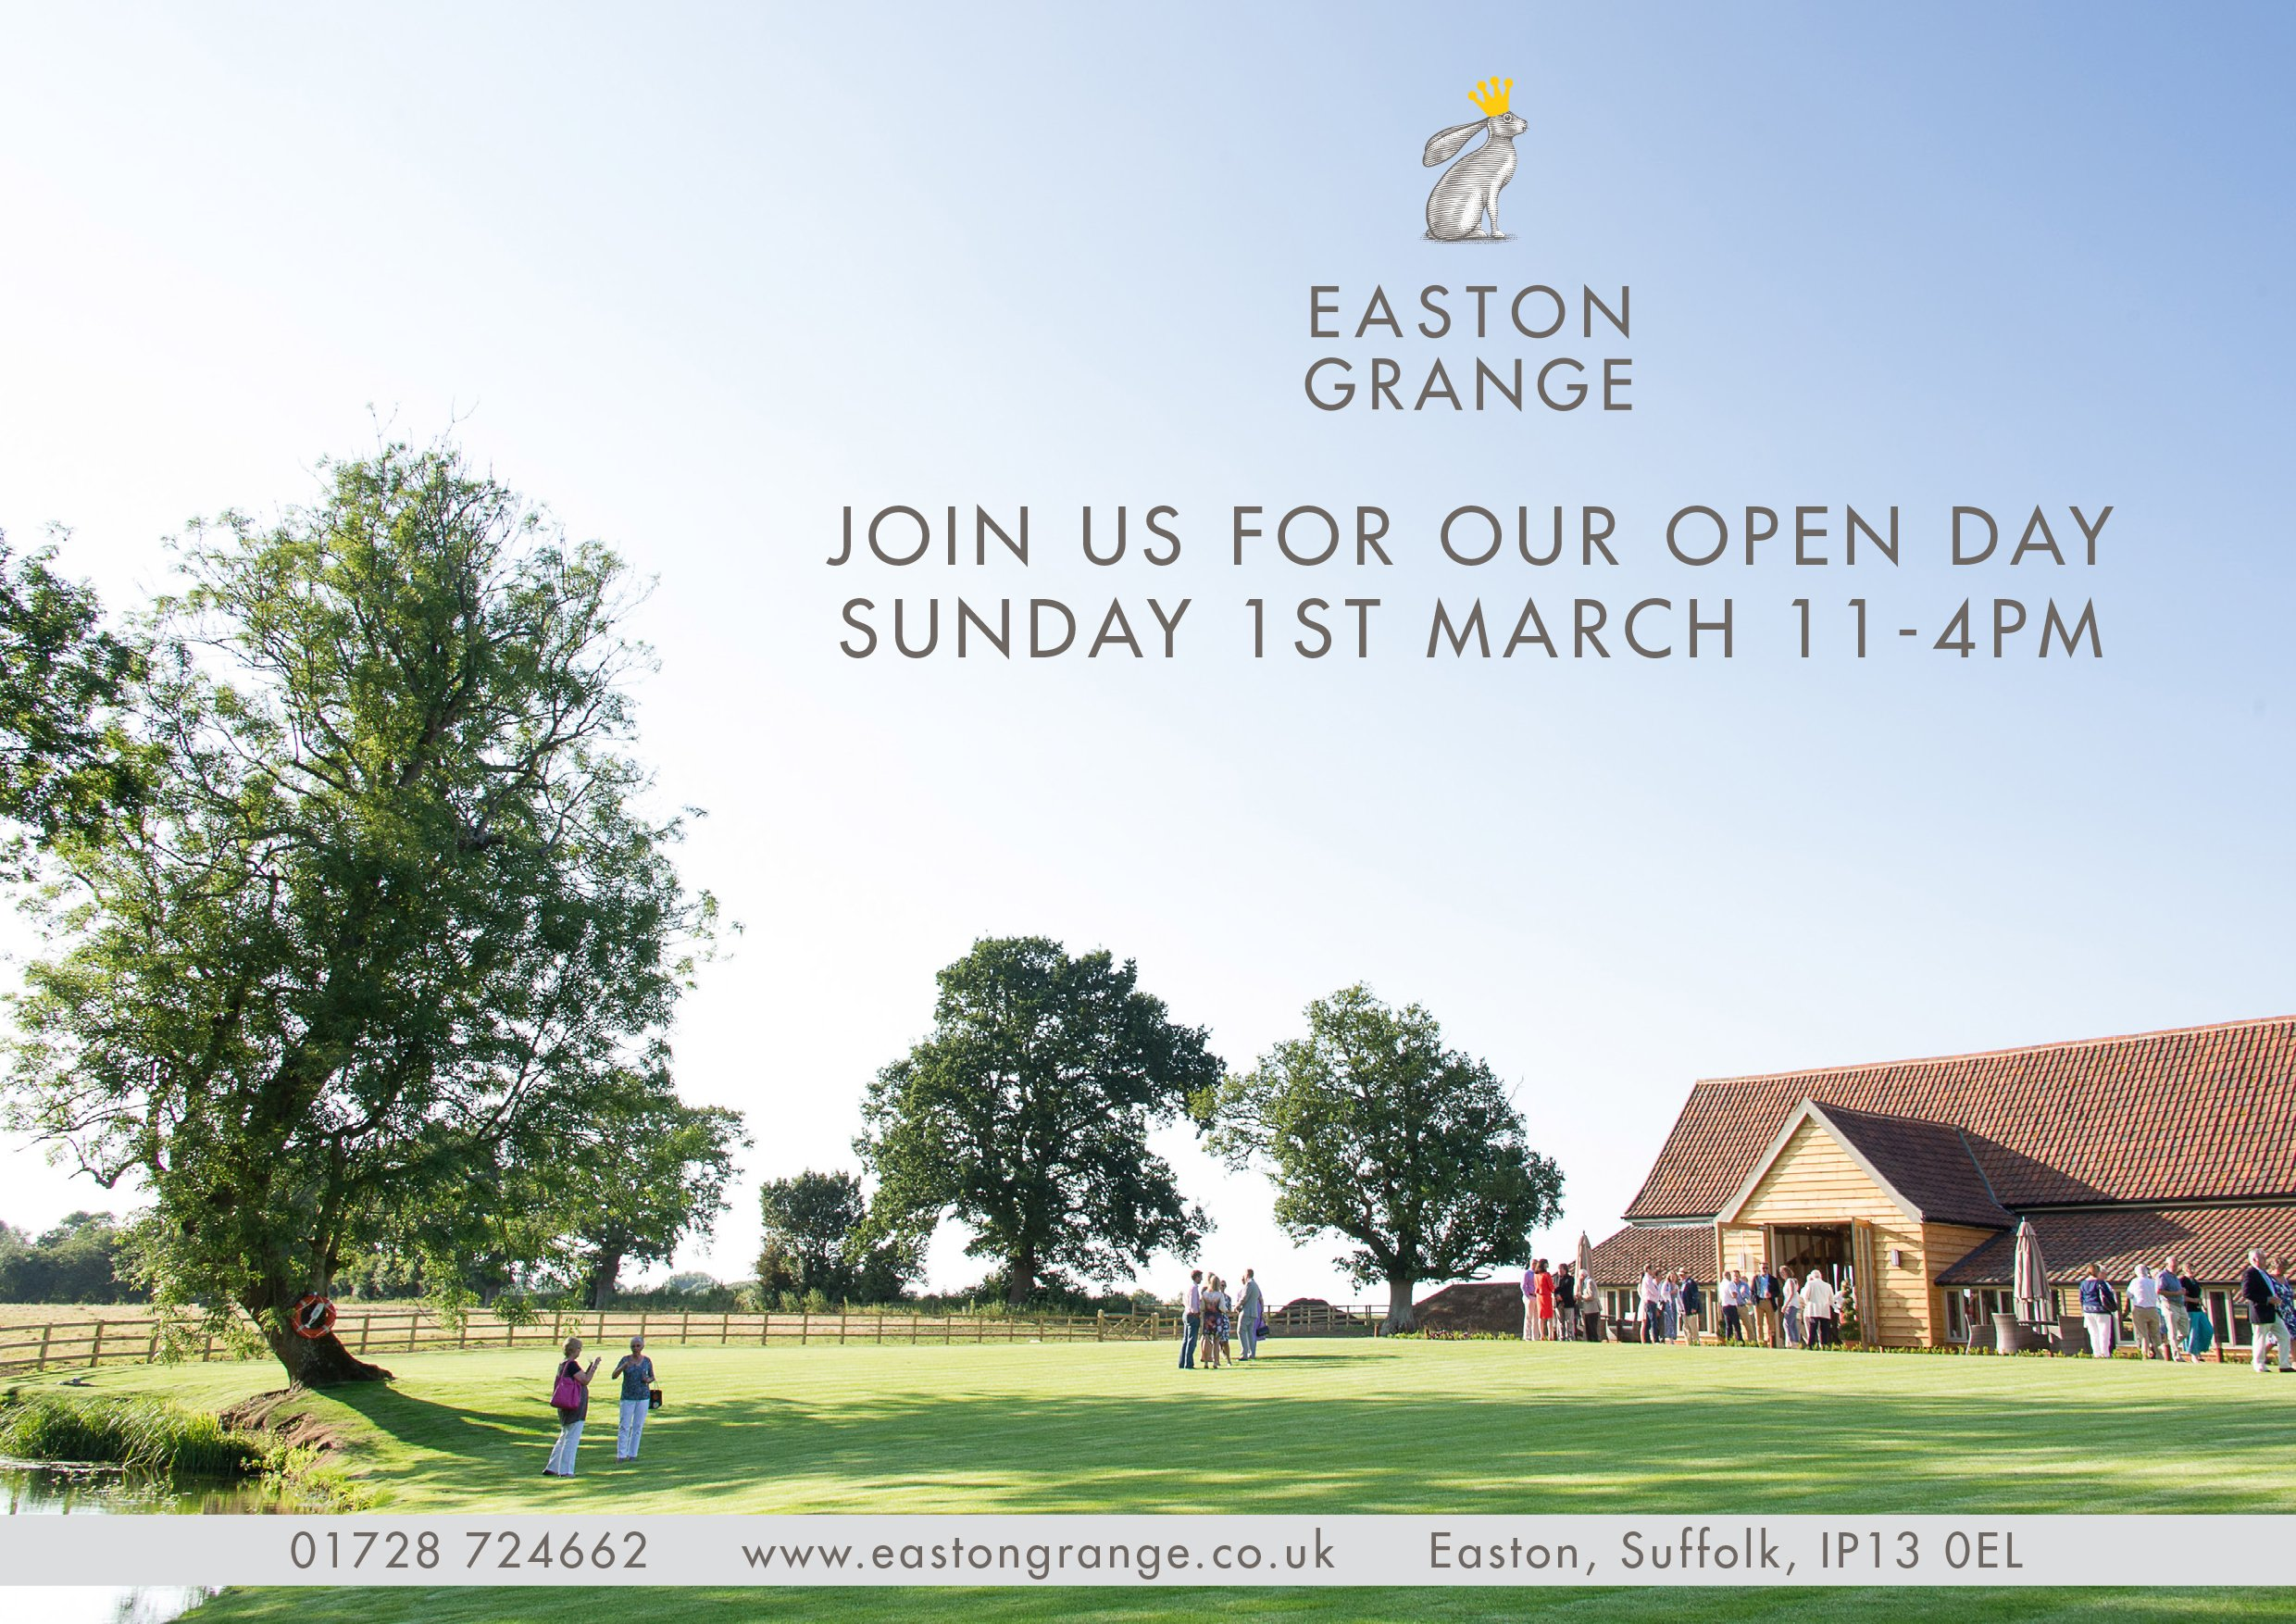 Easton Grange Leaflets